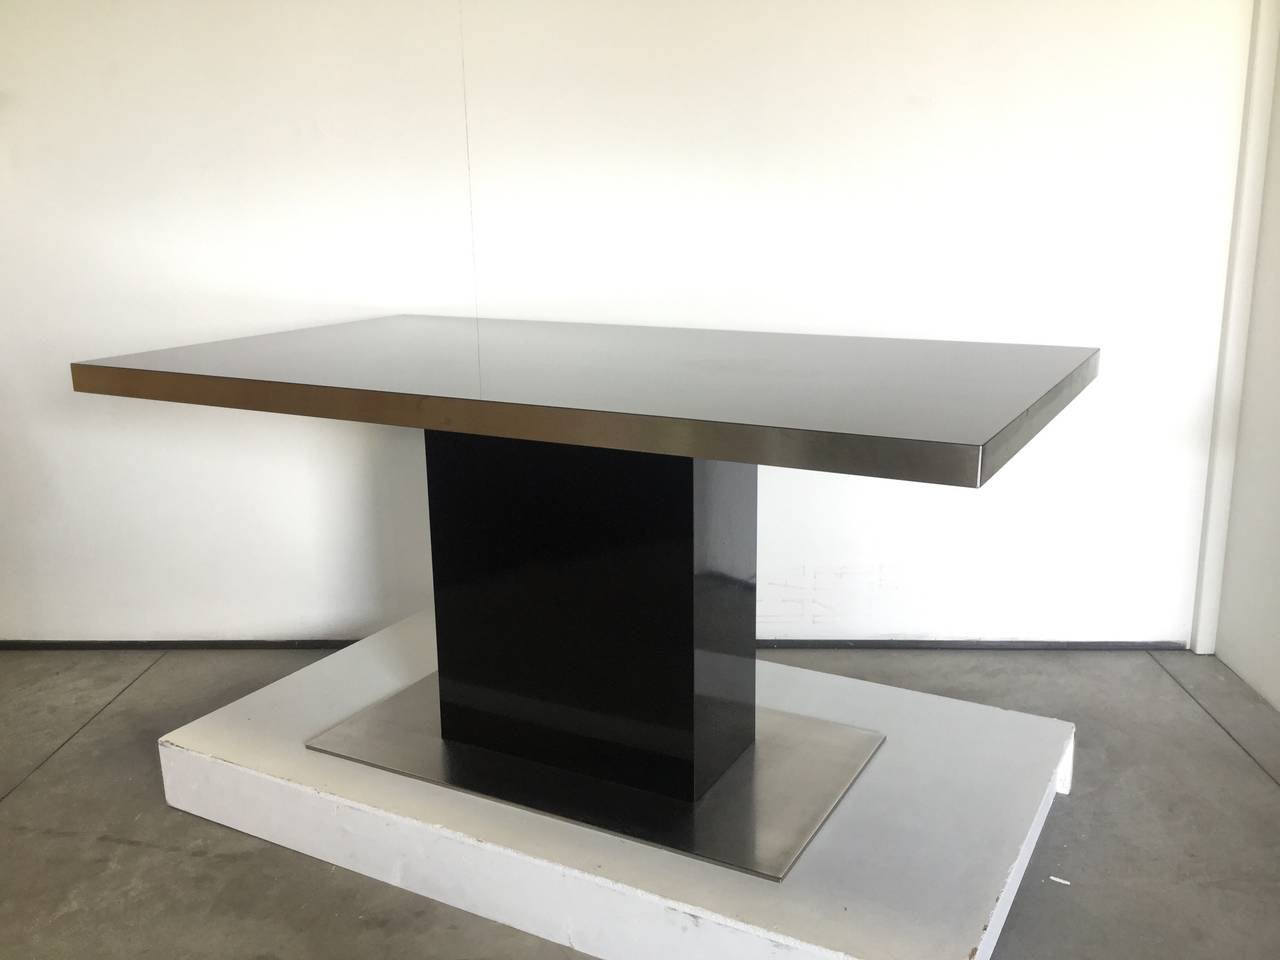 Dining table by willy rizzo 1970 at 1stdibs for Table willy rizzo